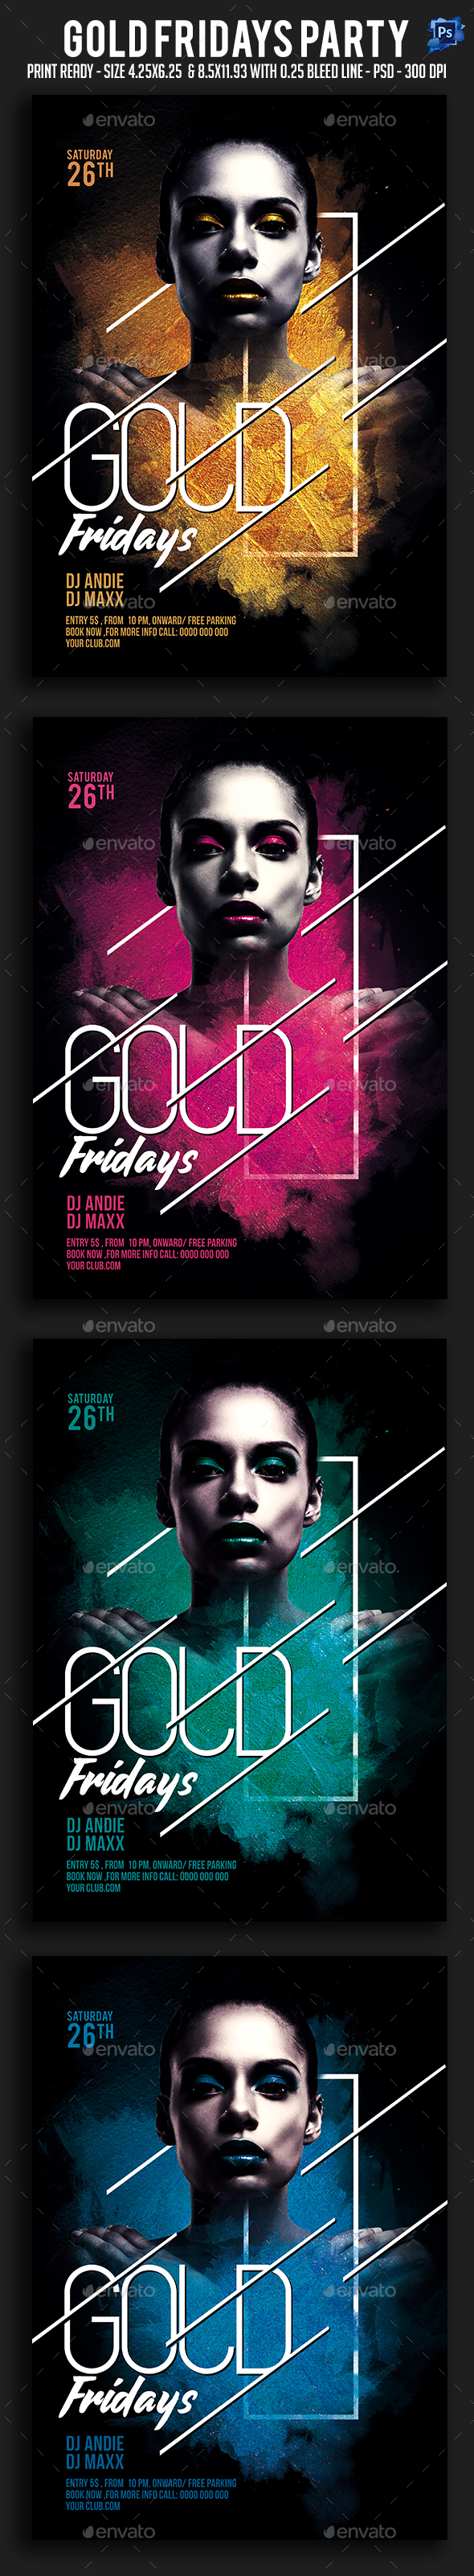 GraphicRiver Gold Fridays Party Flyer 20693654